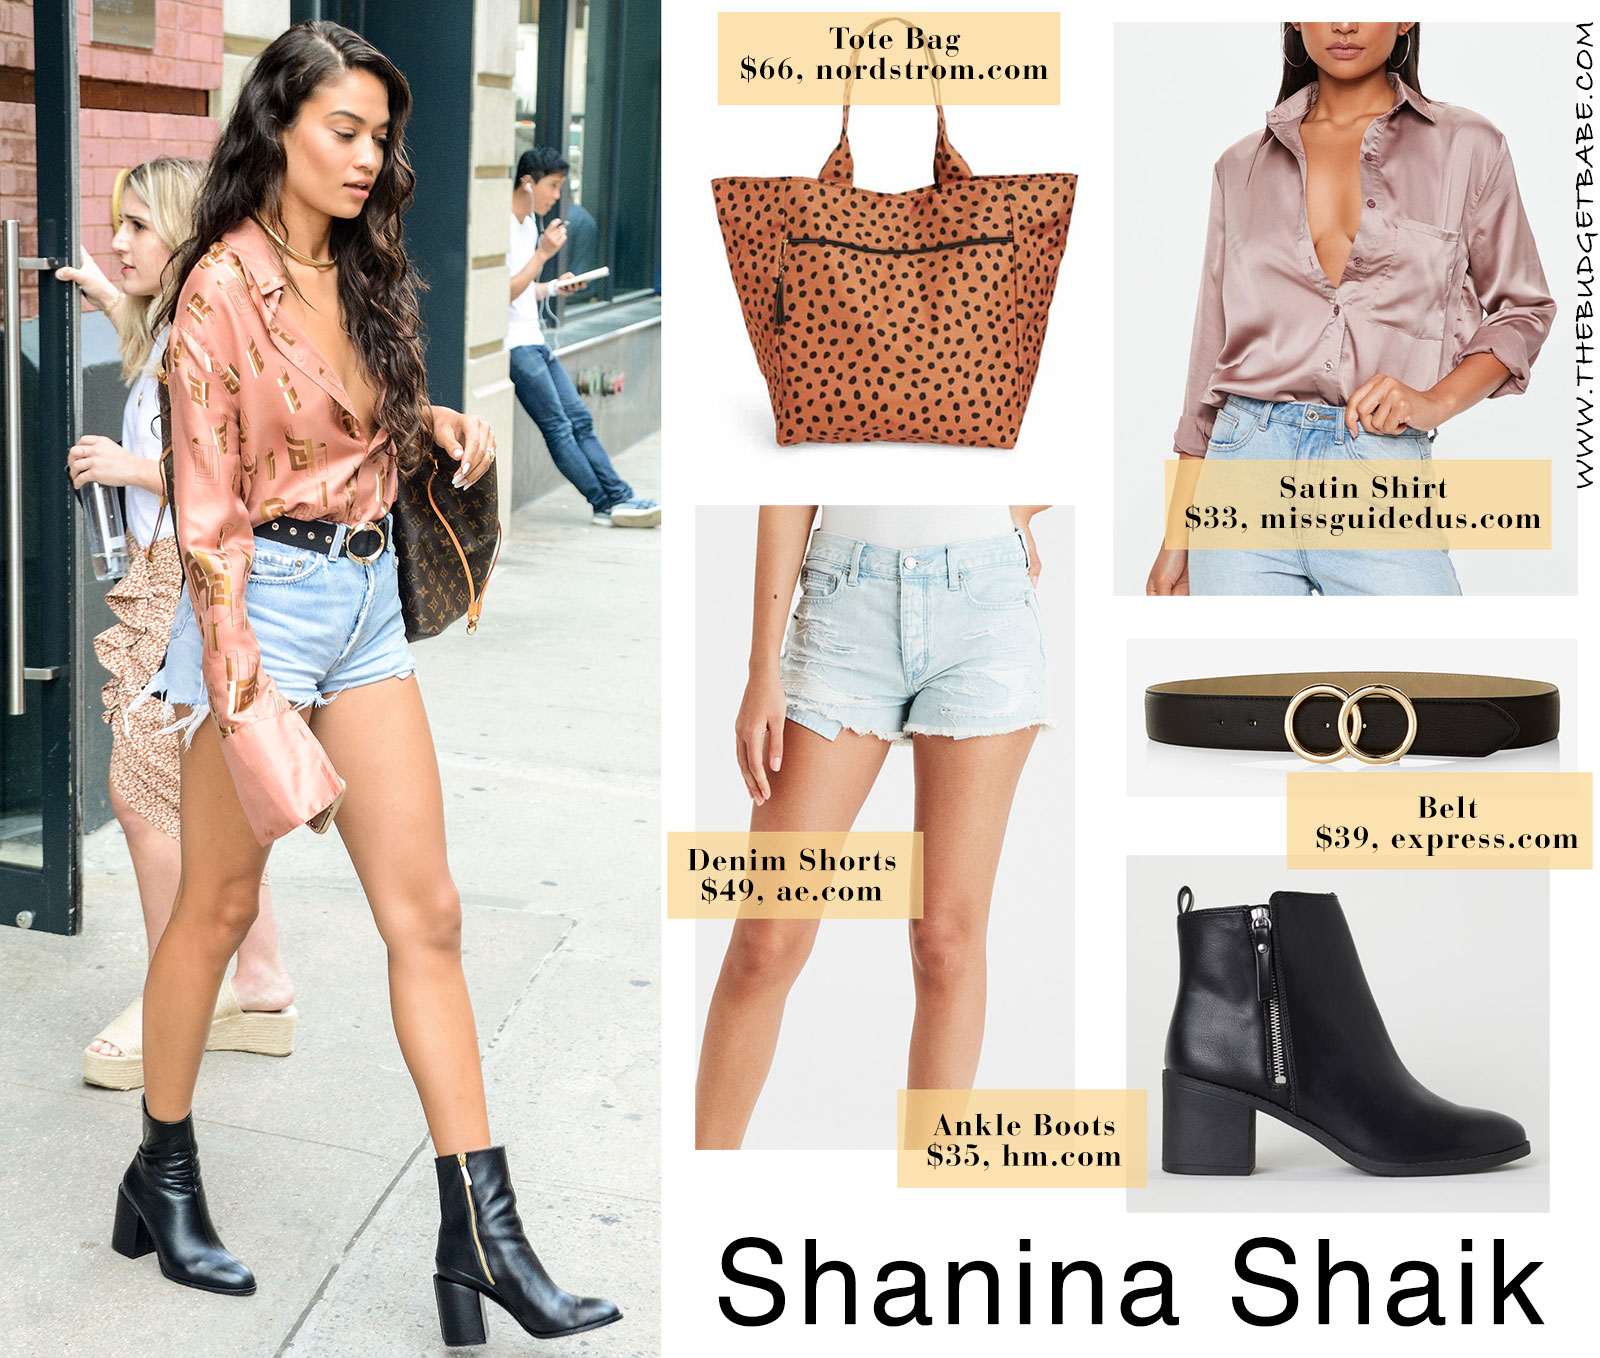 Shanina Shaik's satin blouse and ankle boots look for less